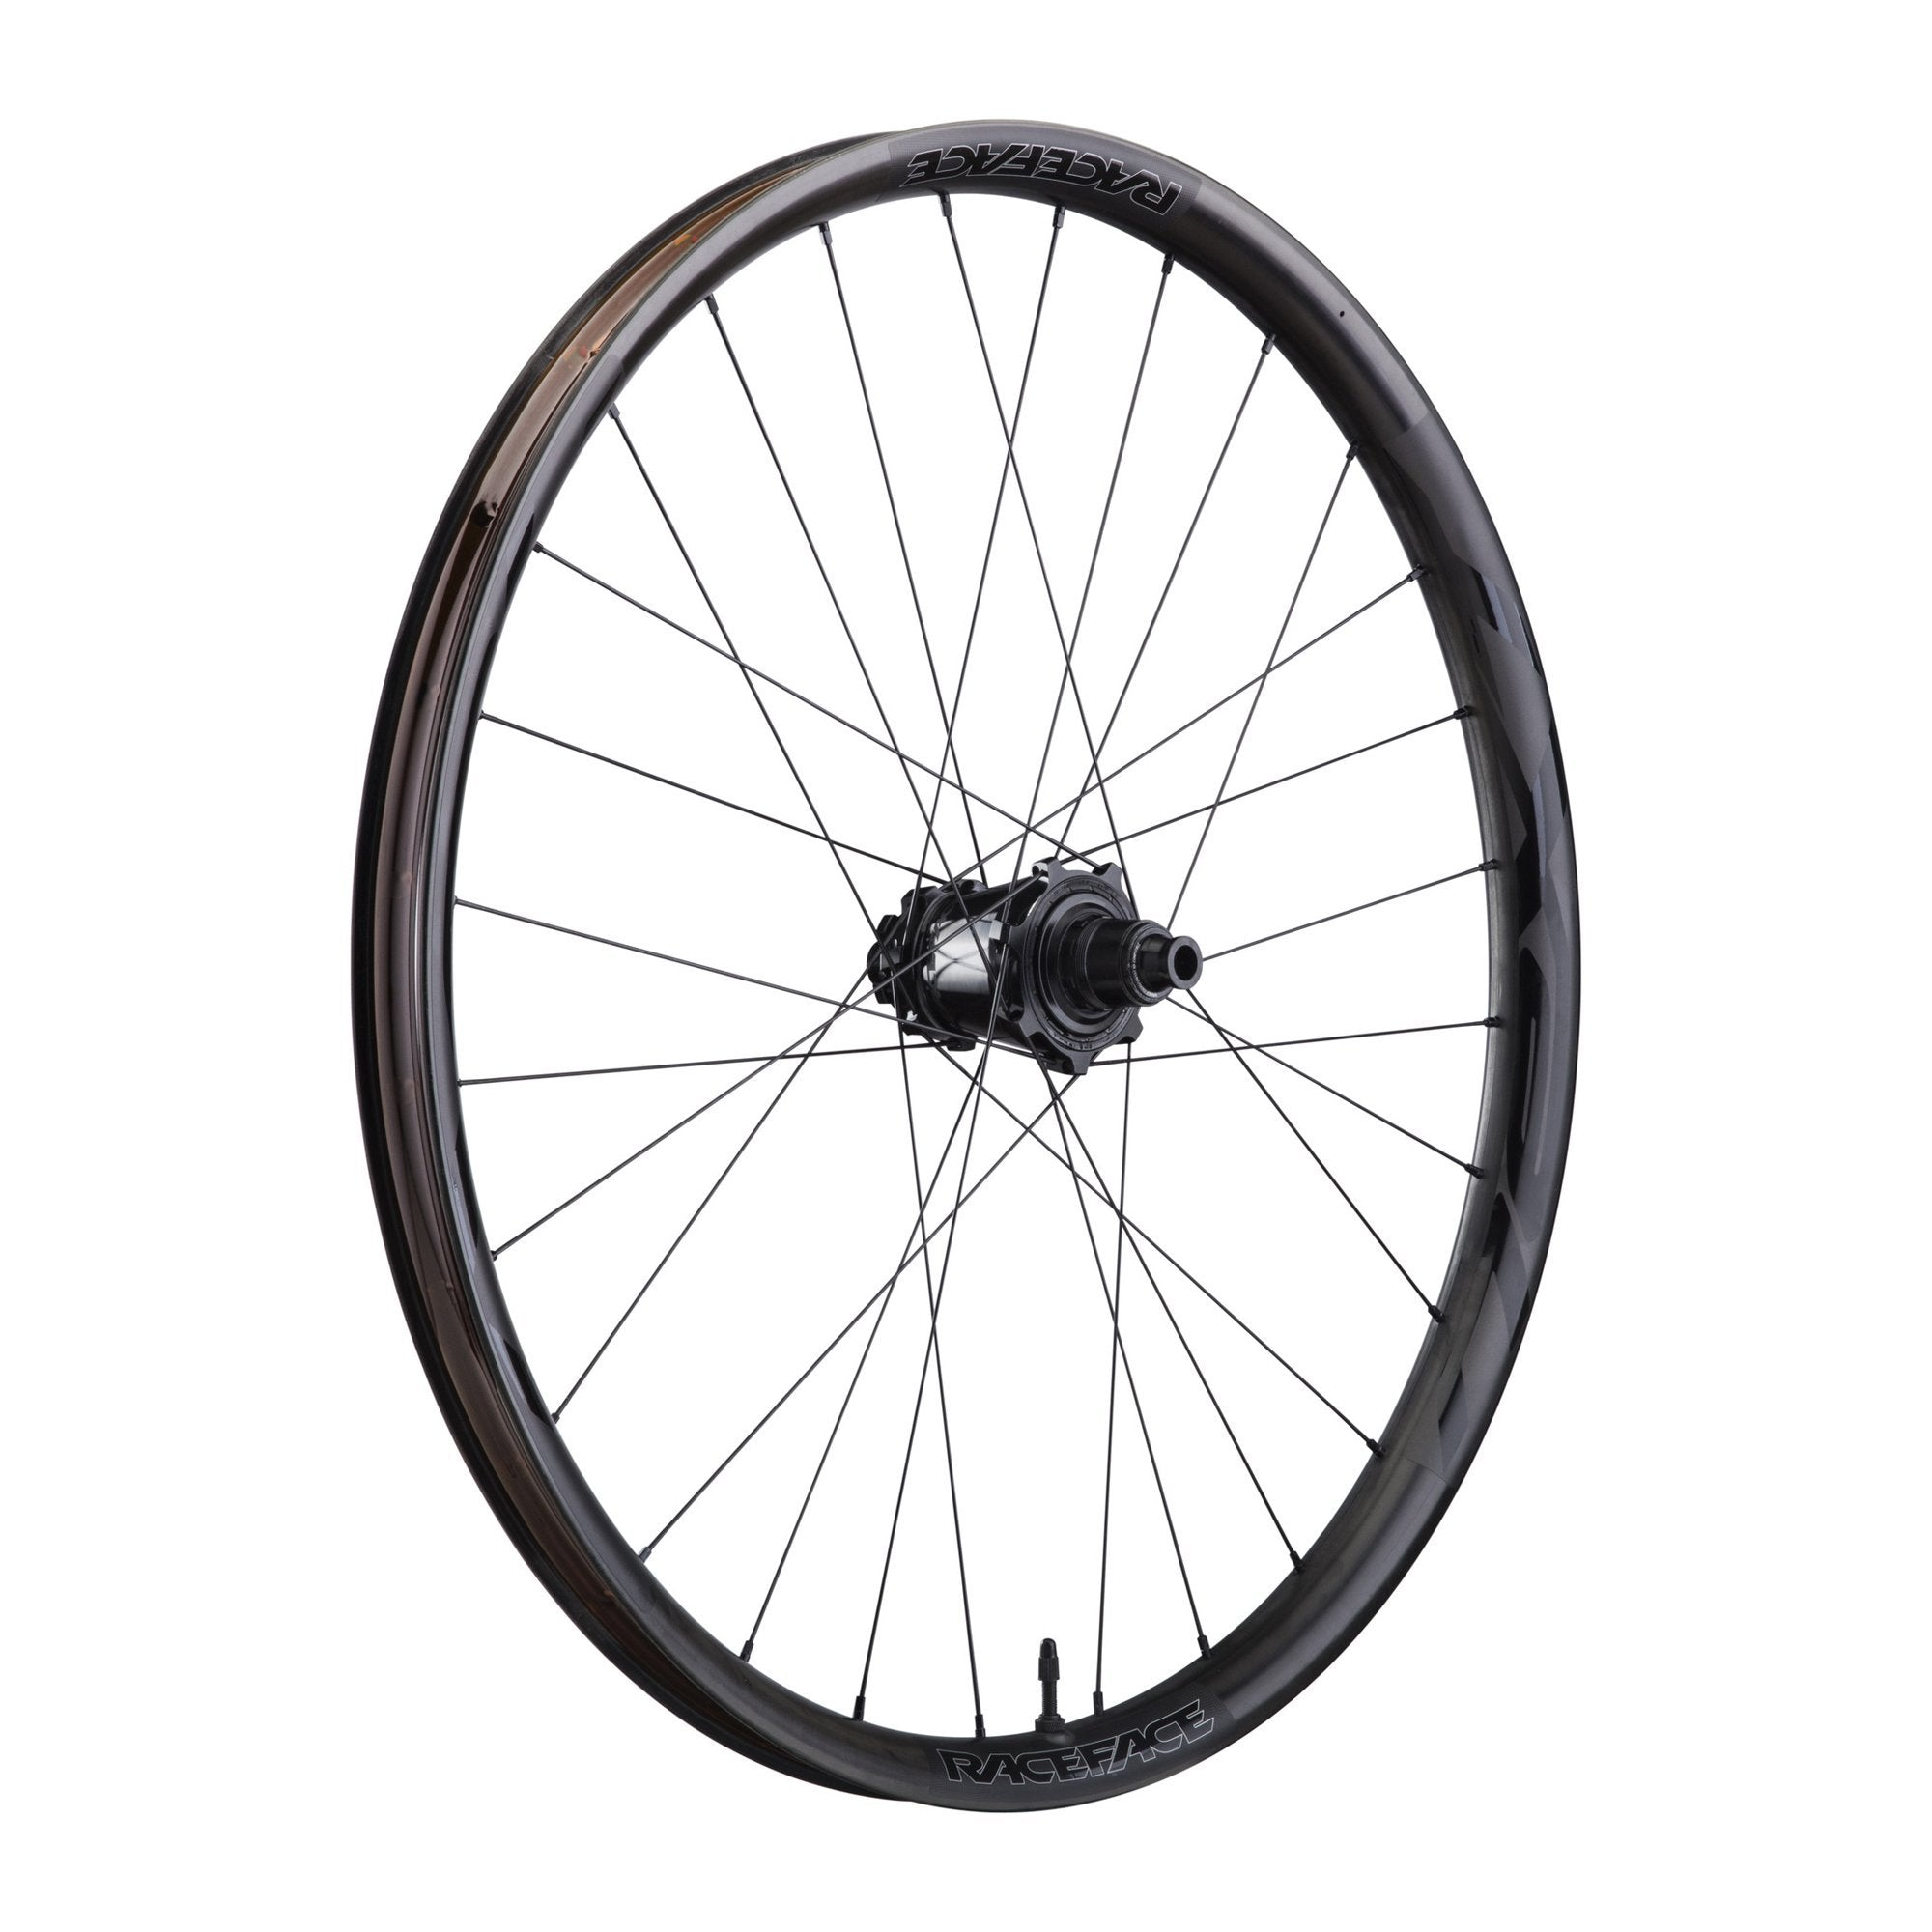 "Race Face Components > Hand Built Wheels Front 31mm 27.5"" 15x110 Race Face Next R Wheel Front"